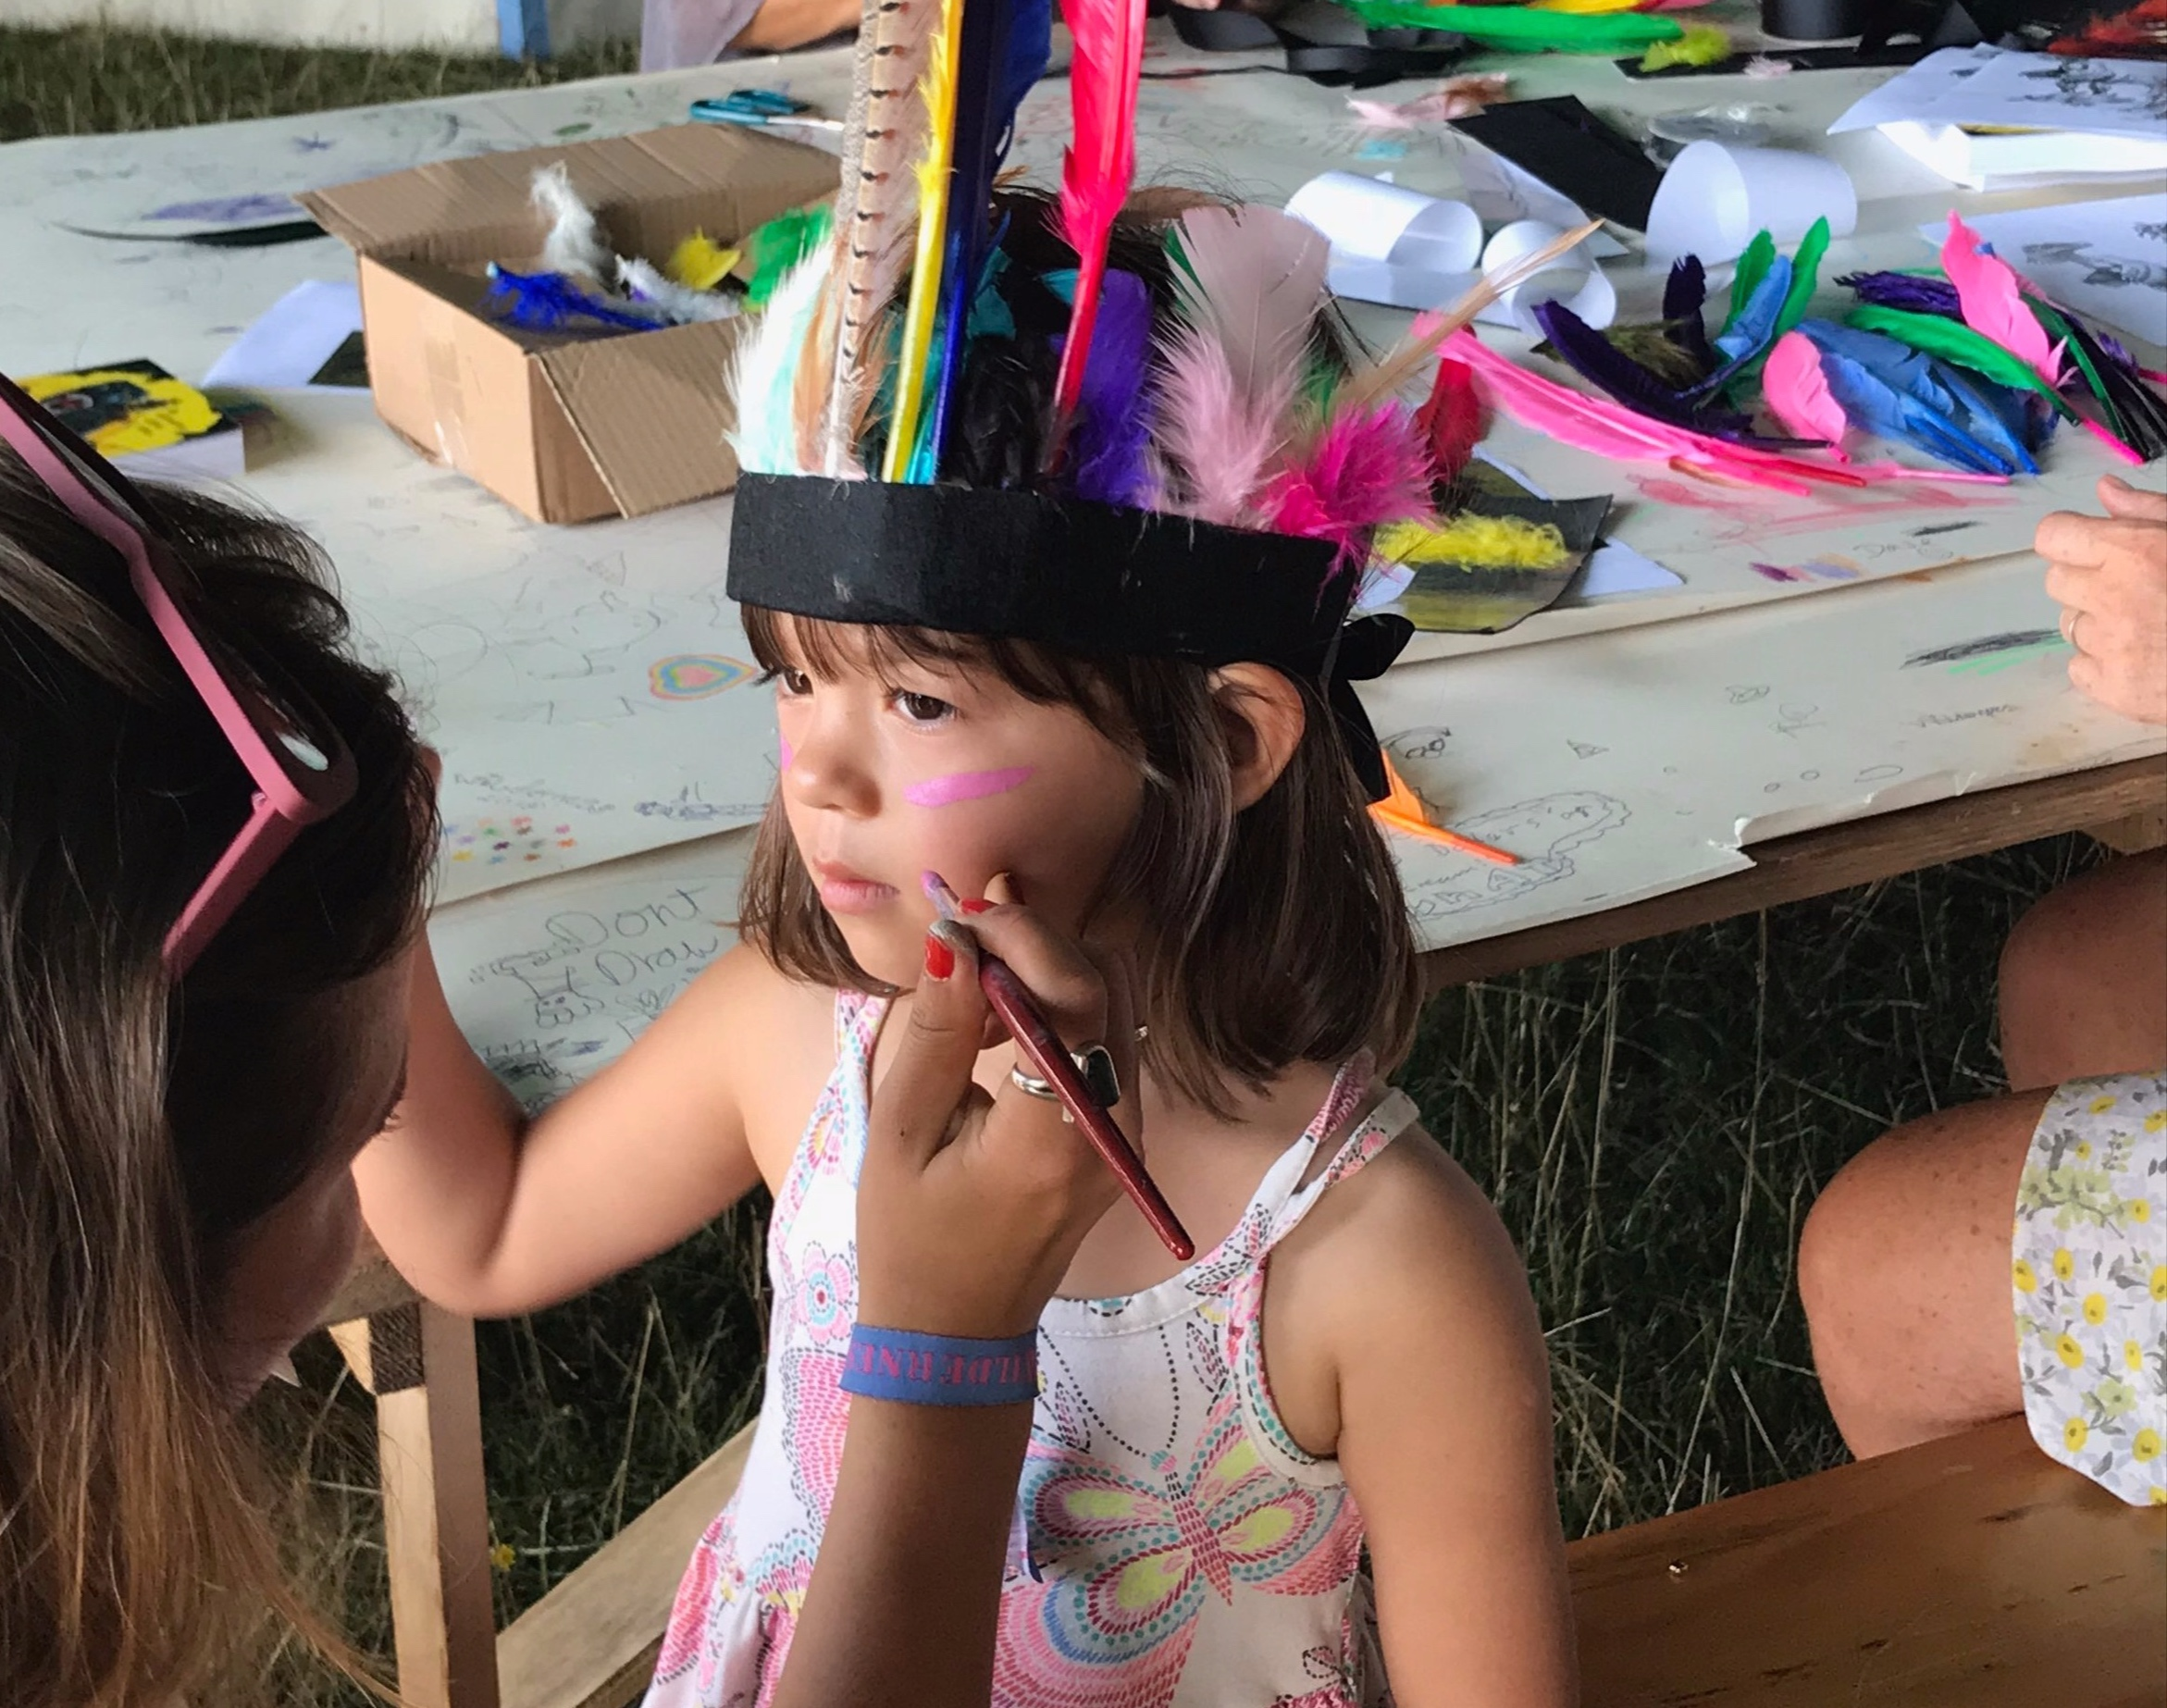 Fantastic Feathers with StoryStock - Make like the Wild Things and get creative in this fabulous headdress making workshop so you are all ready for the big parade finale. For all ages.